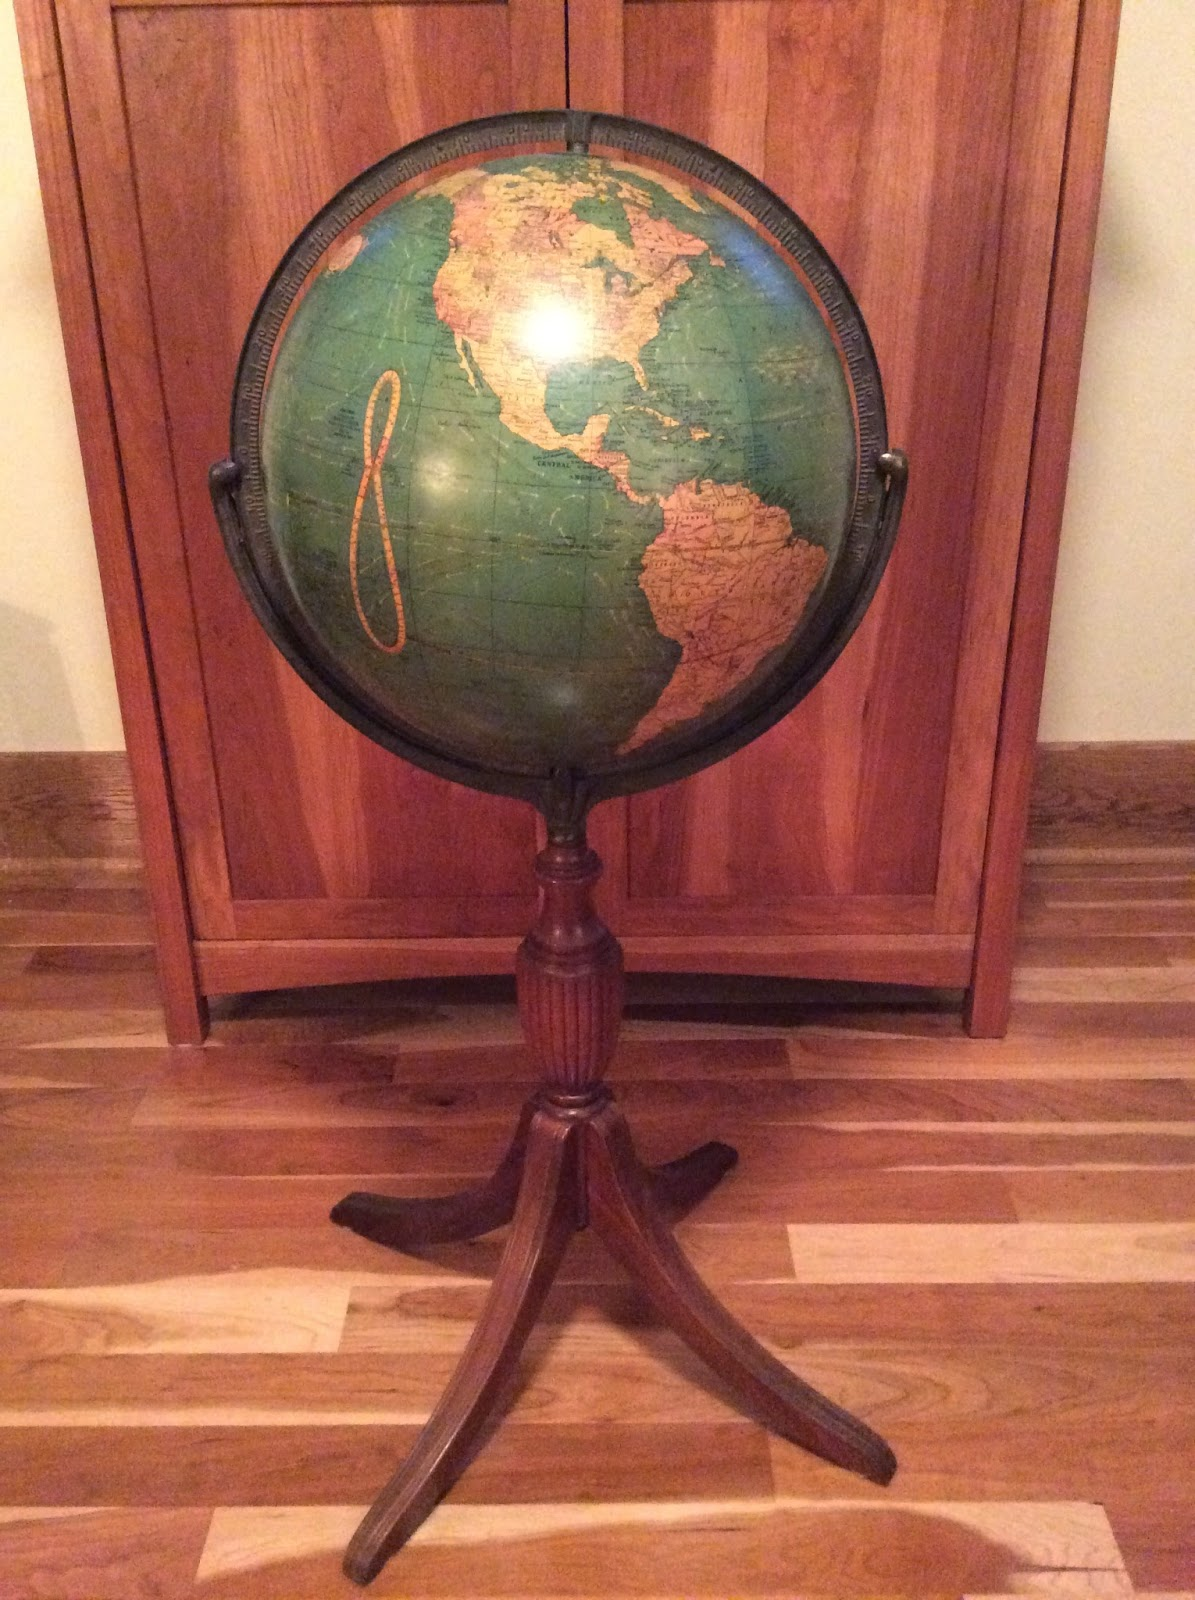 world globe town house study in furniture floors with dolls standing stand walnut floor miniature